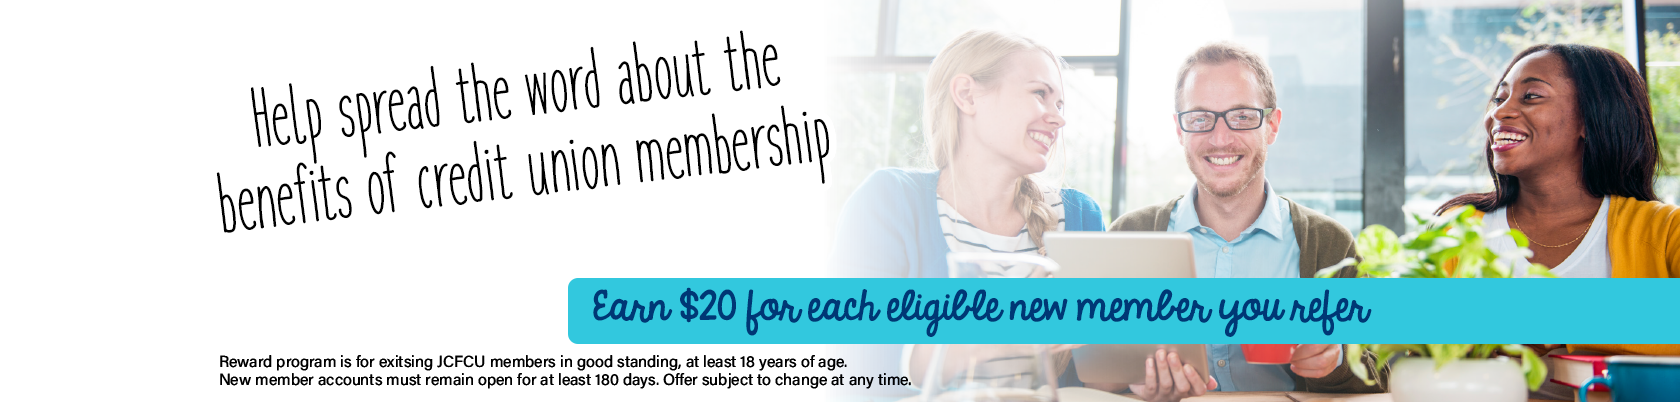 Member Referral - earn $20 for each new member you refer.